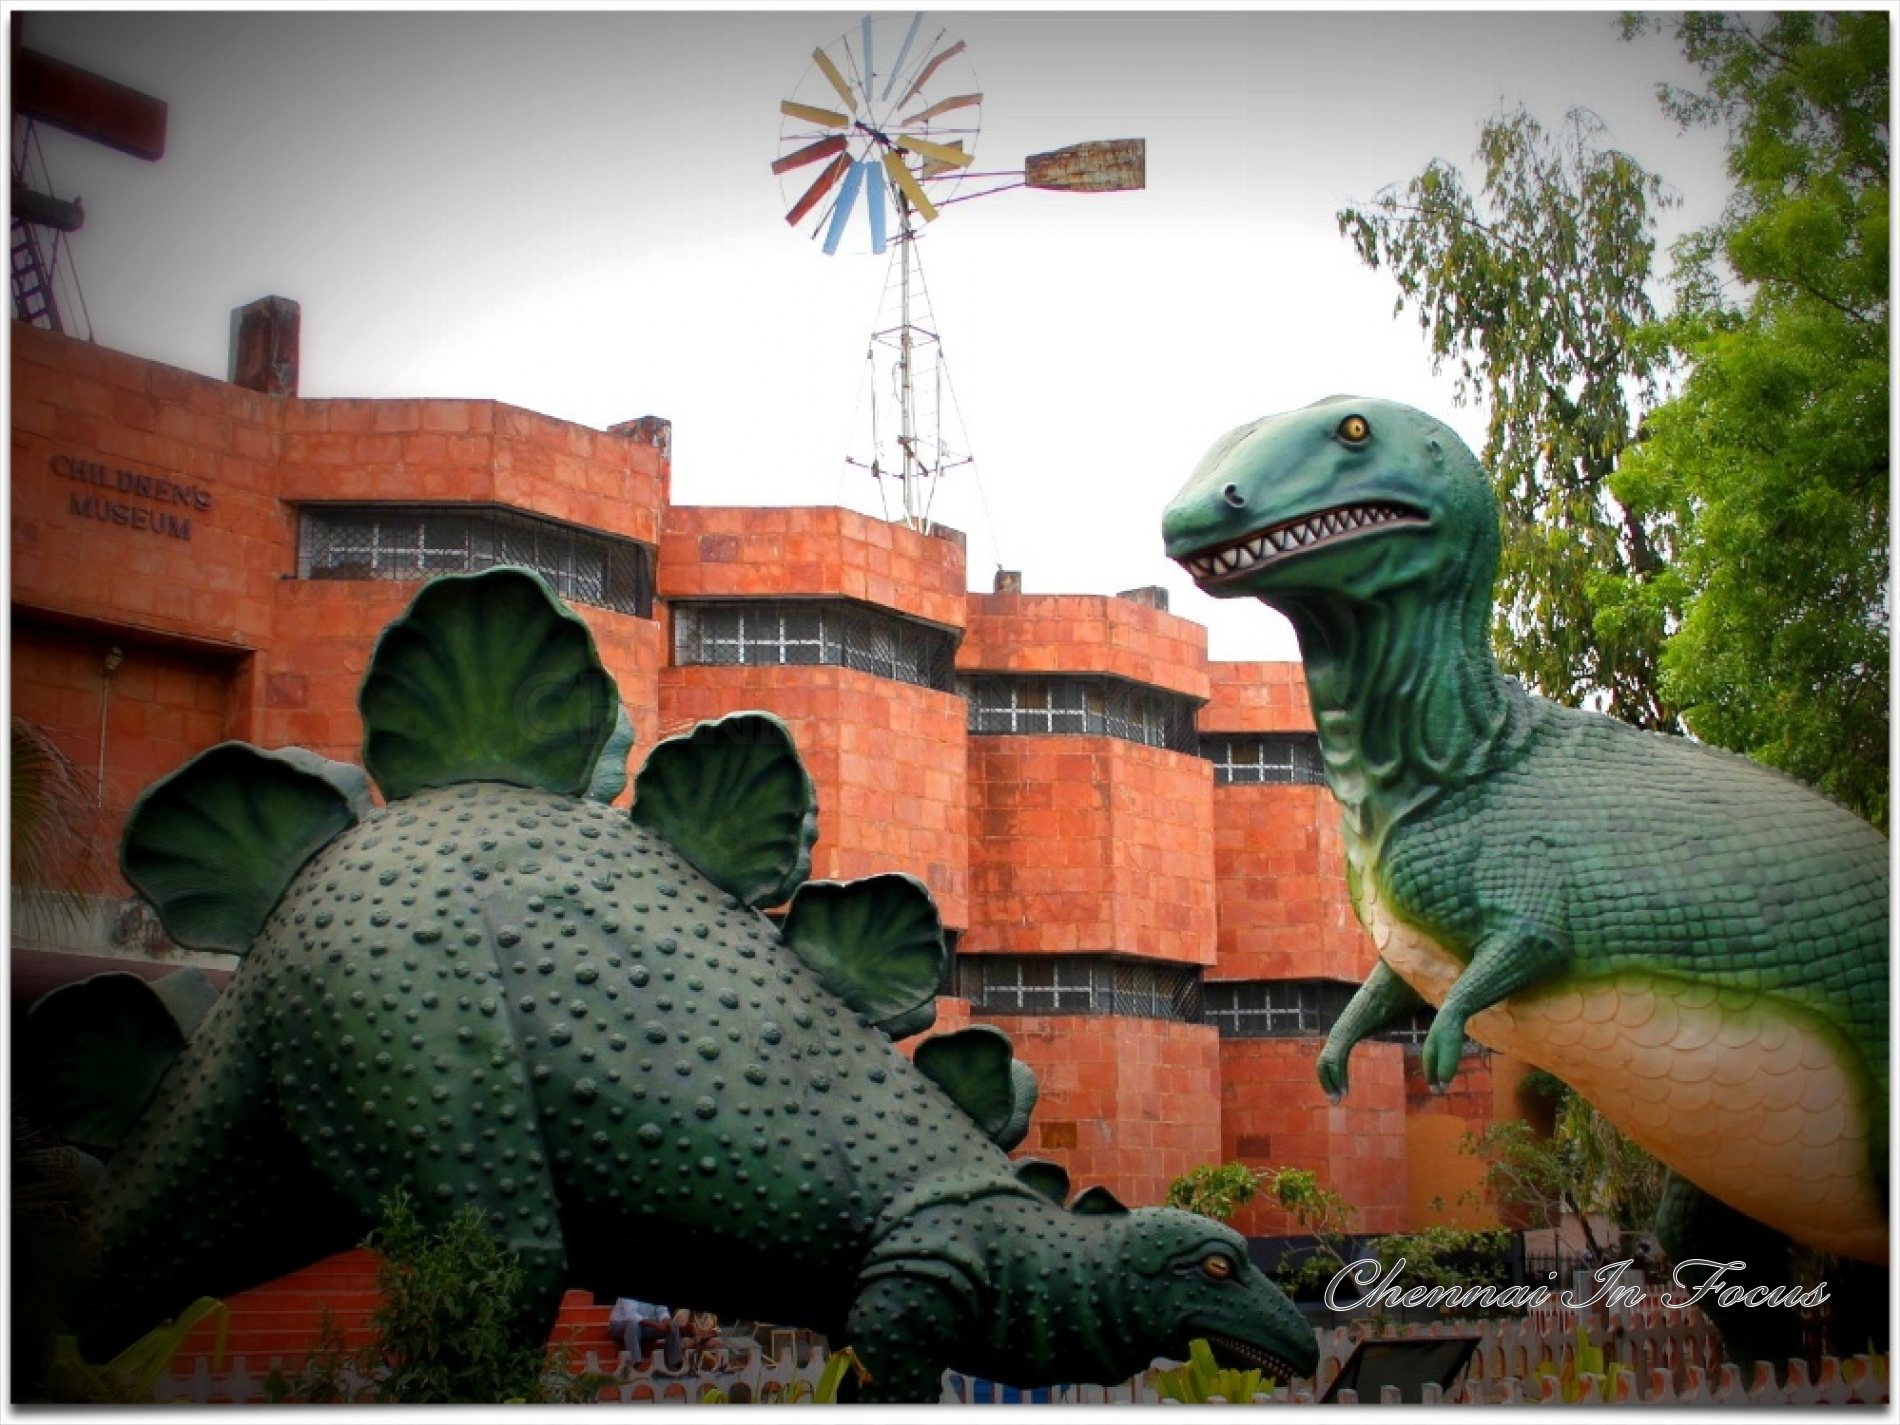 Chennai In Focus - Government Museum | Chennai Museum